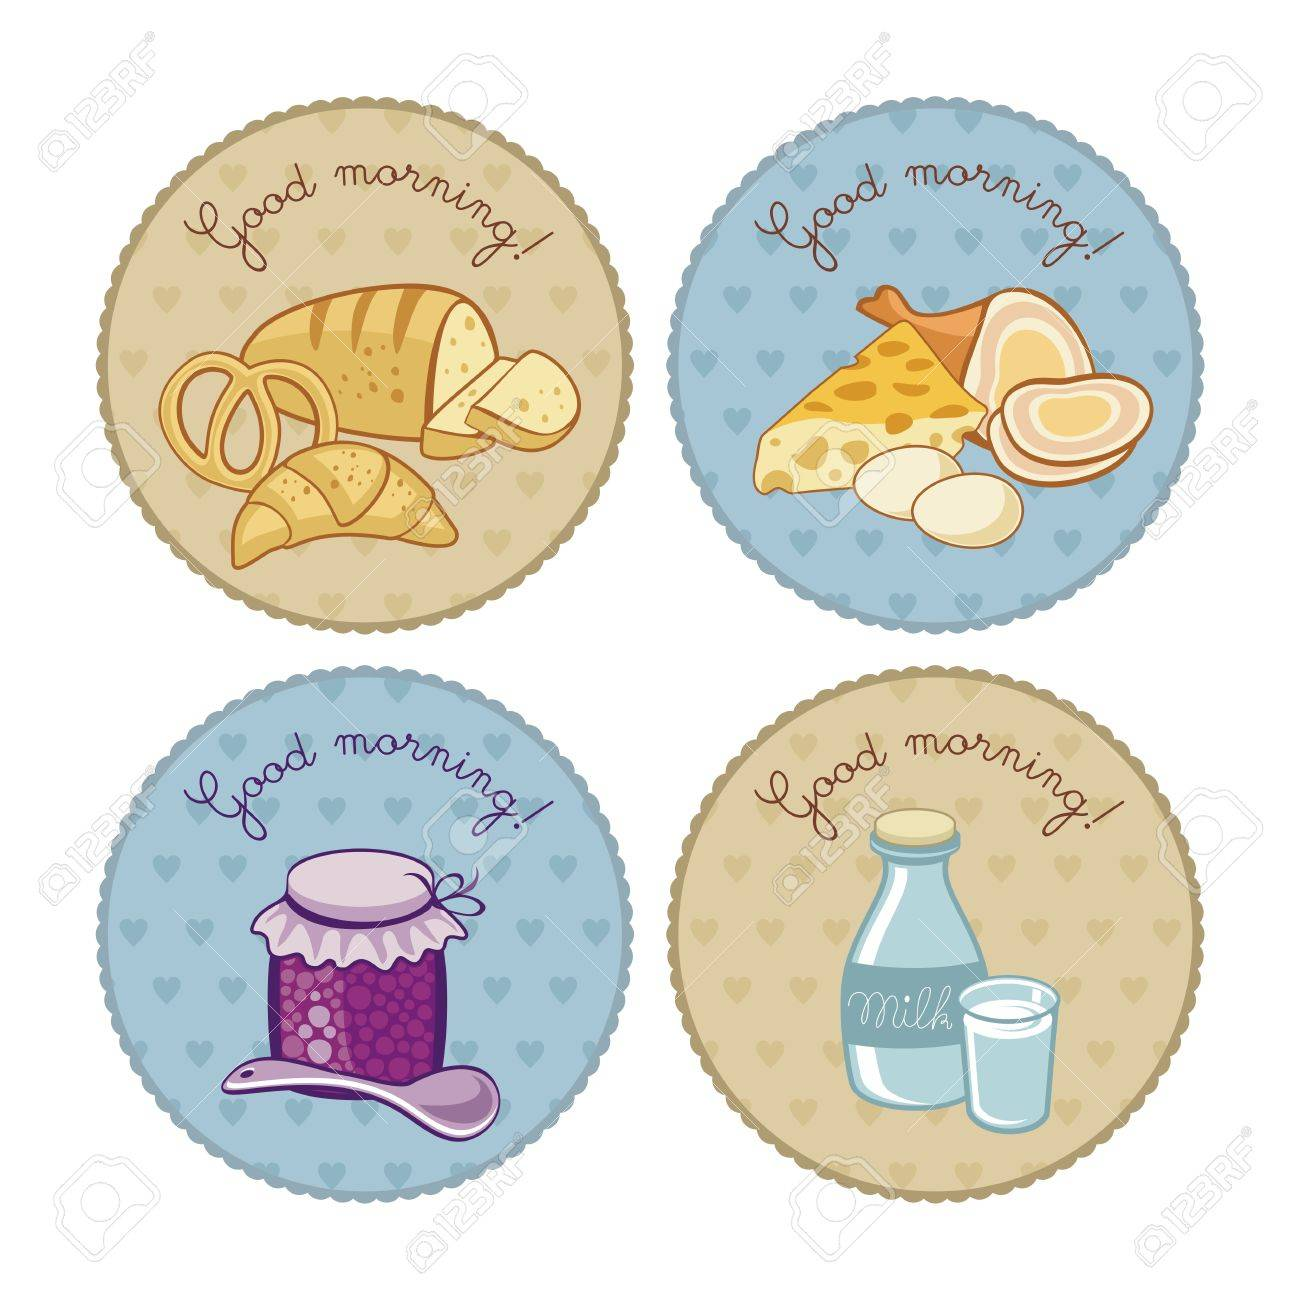 Breakfast Set With Round Vintage Tags Royalty Free Cliparts, Vectors ...